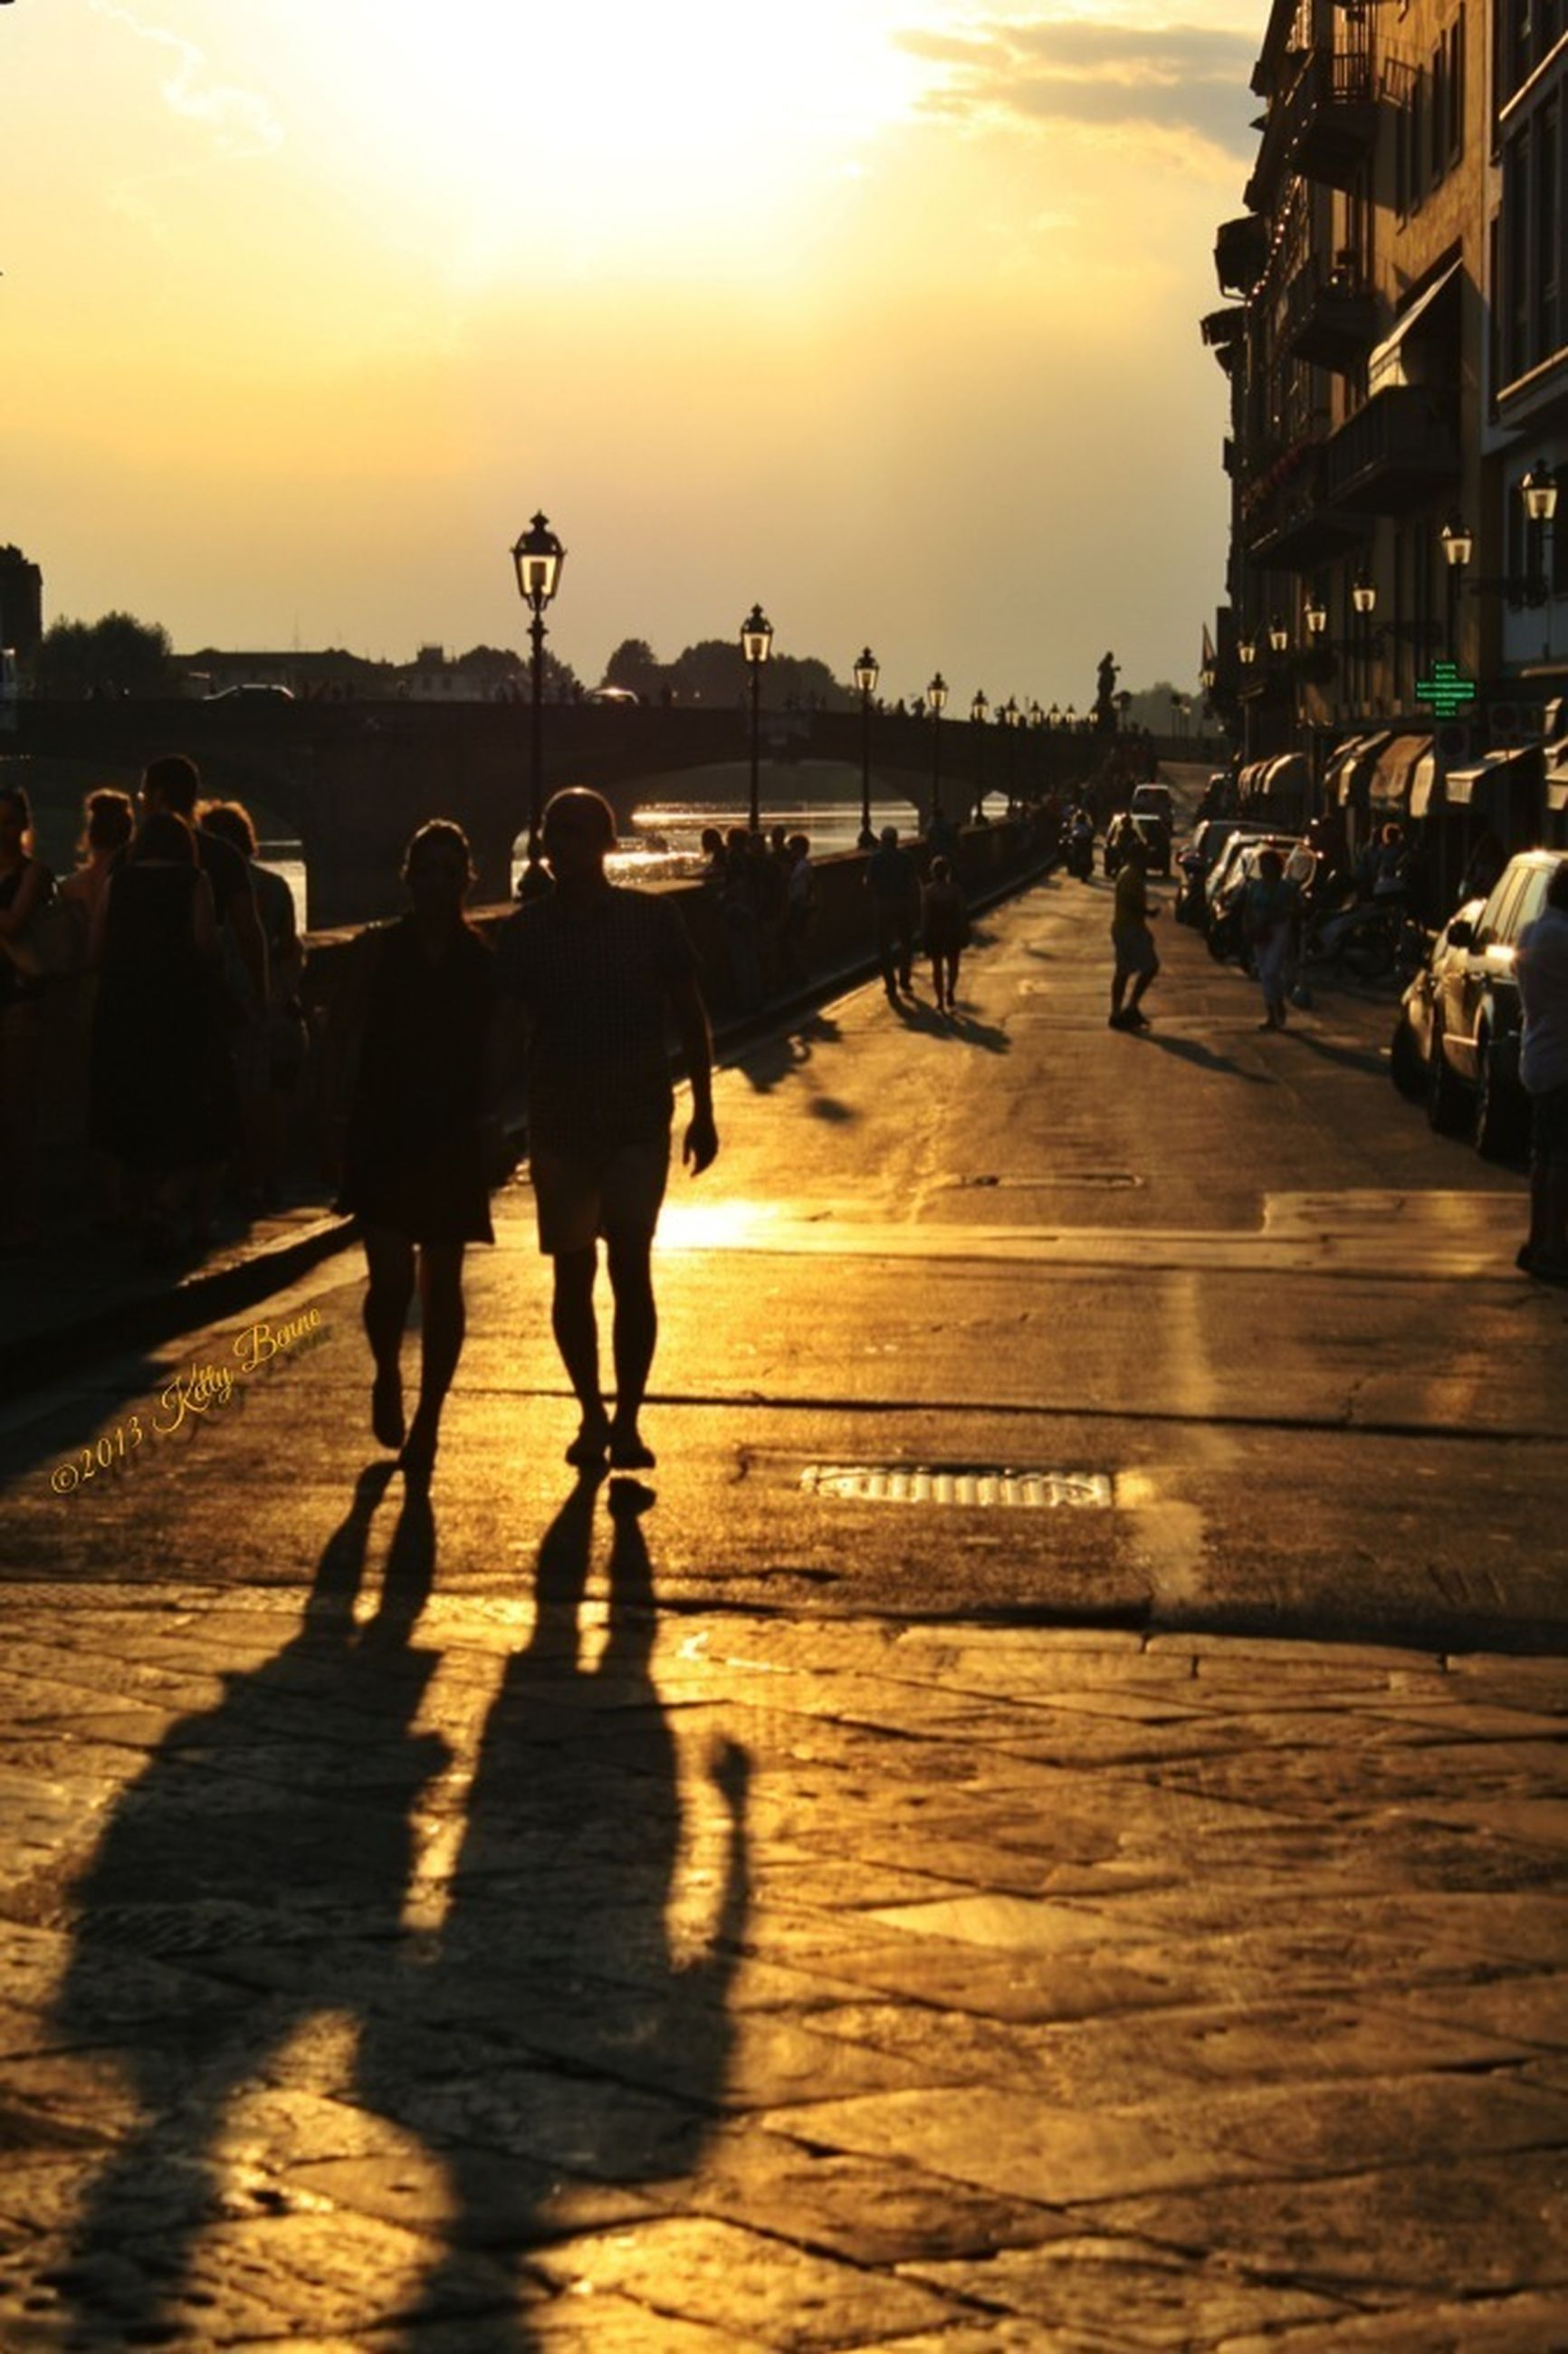 sunset, lifestyles, walking, silhouette, men, person, large group of people, leisure activity, beach, orange color, sunlight, sky, sea, city life, mixed age range, shadow, full length, sun, togetherness